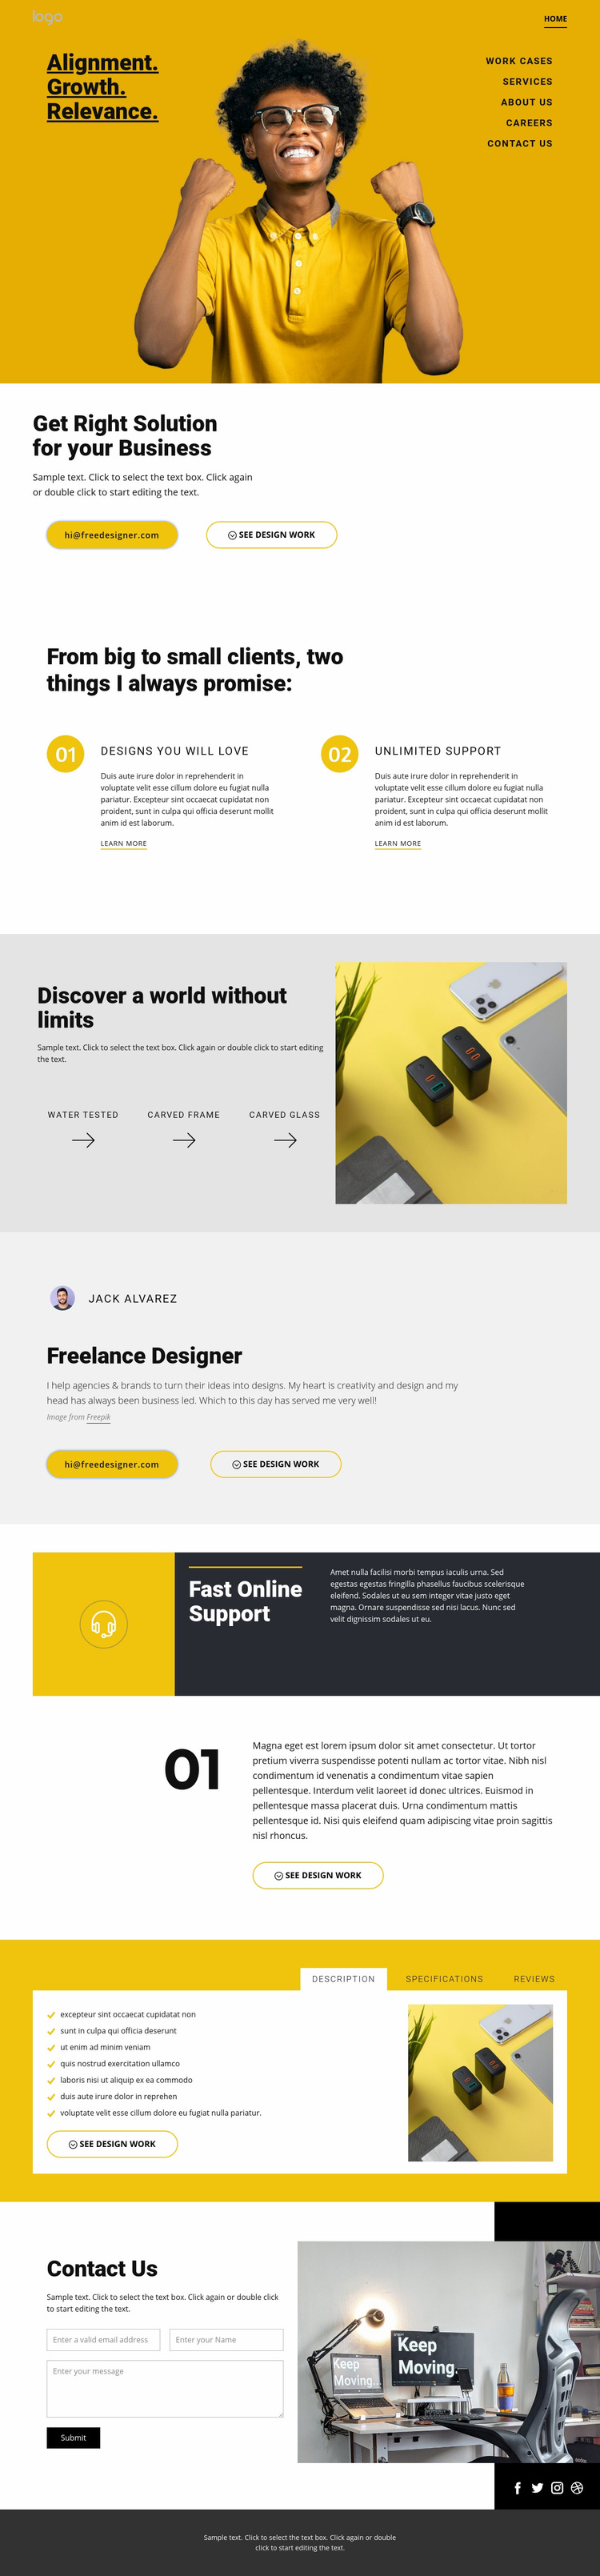 Quality is our goal Web Page Designer